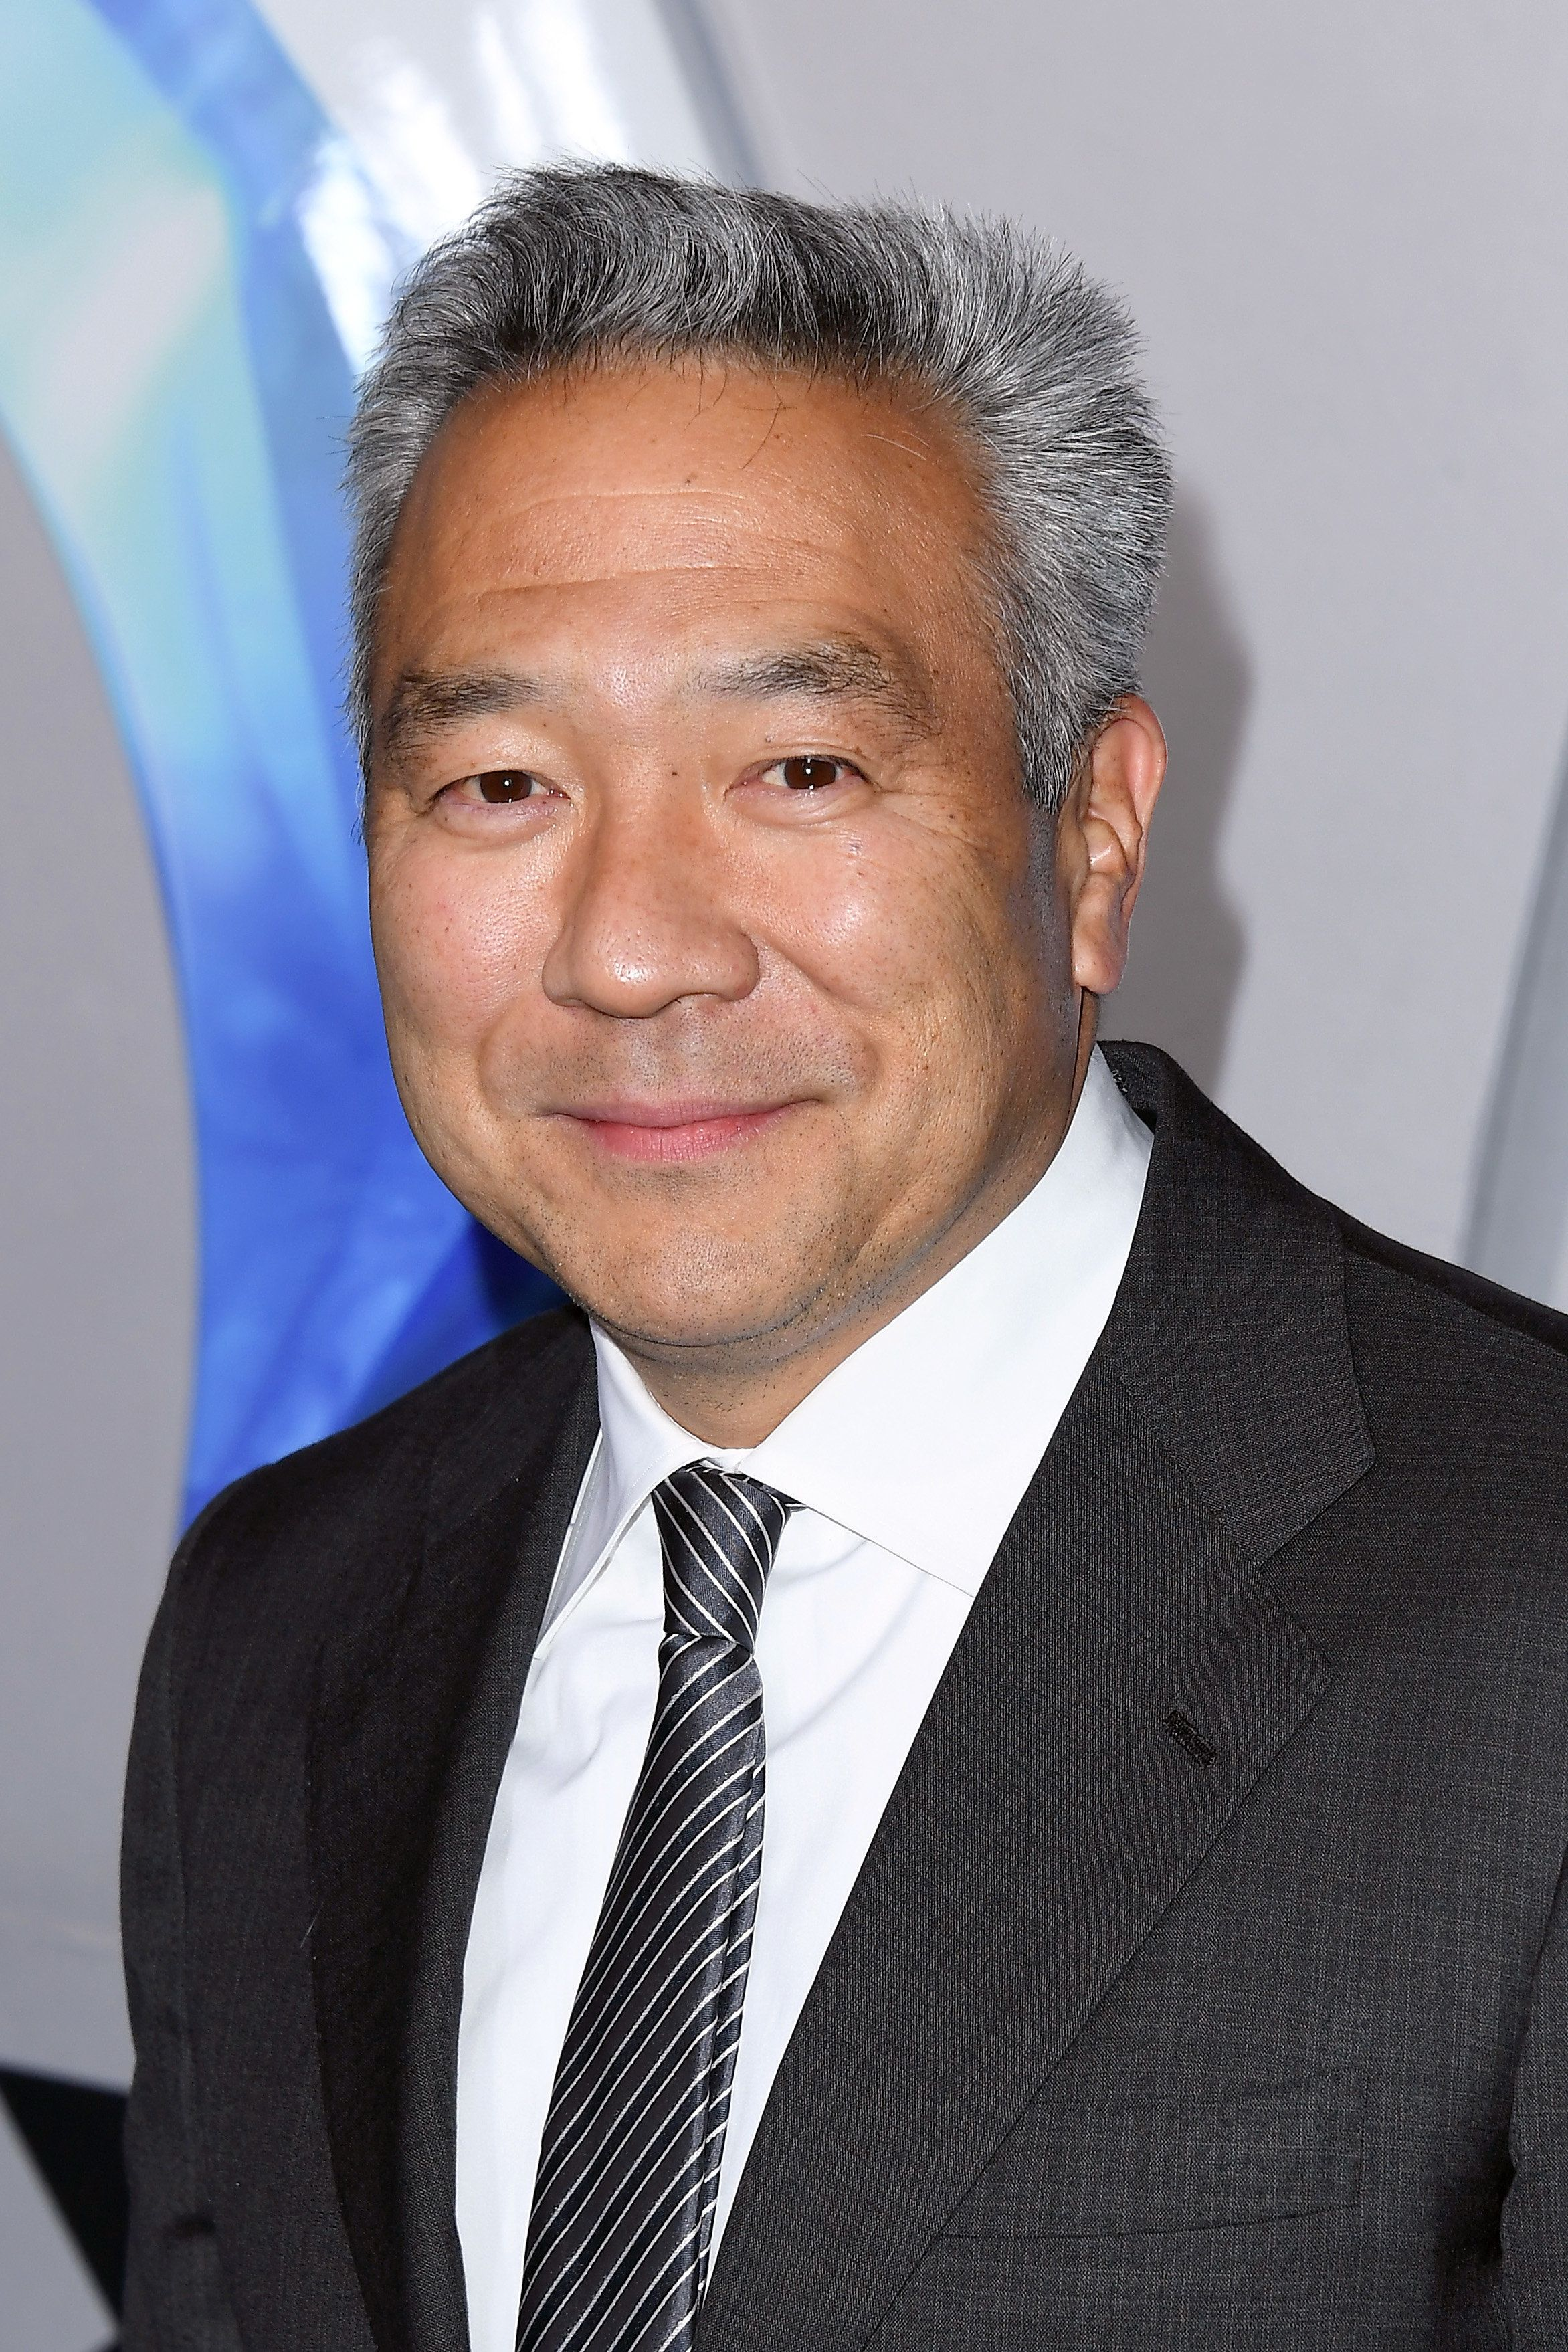 HOLLYWOOD, CALIFORNIA - DECEMBER 12:  Chairman and CEO of Warner Bros. Entertainment Kevin Tsujihara attends the premiere of Warner Bros. Pictures' 'Aquaman' at TCL Chinese Theatre on December 12, 2018 in Hollywood, California. (Photo by Steve Granitz/WireImage)